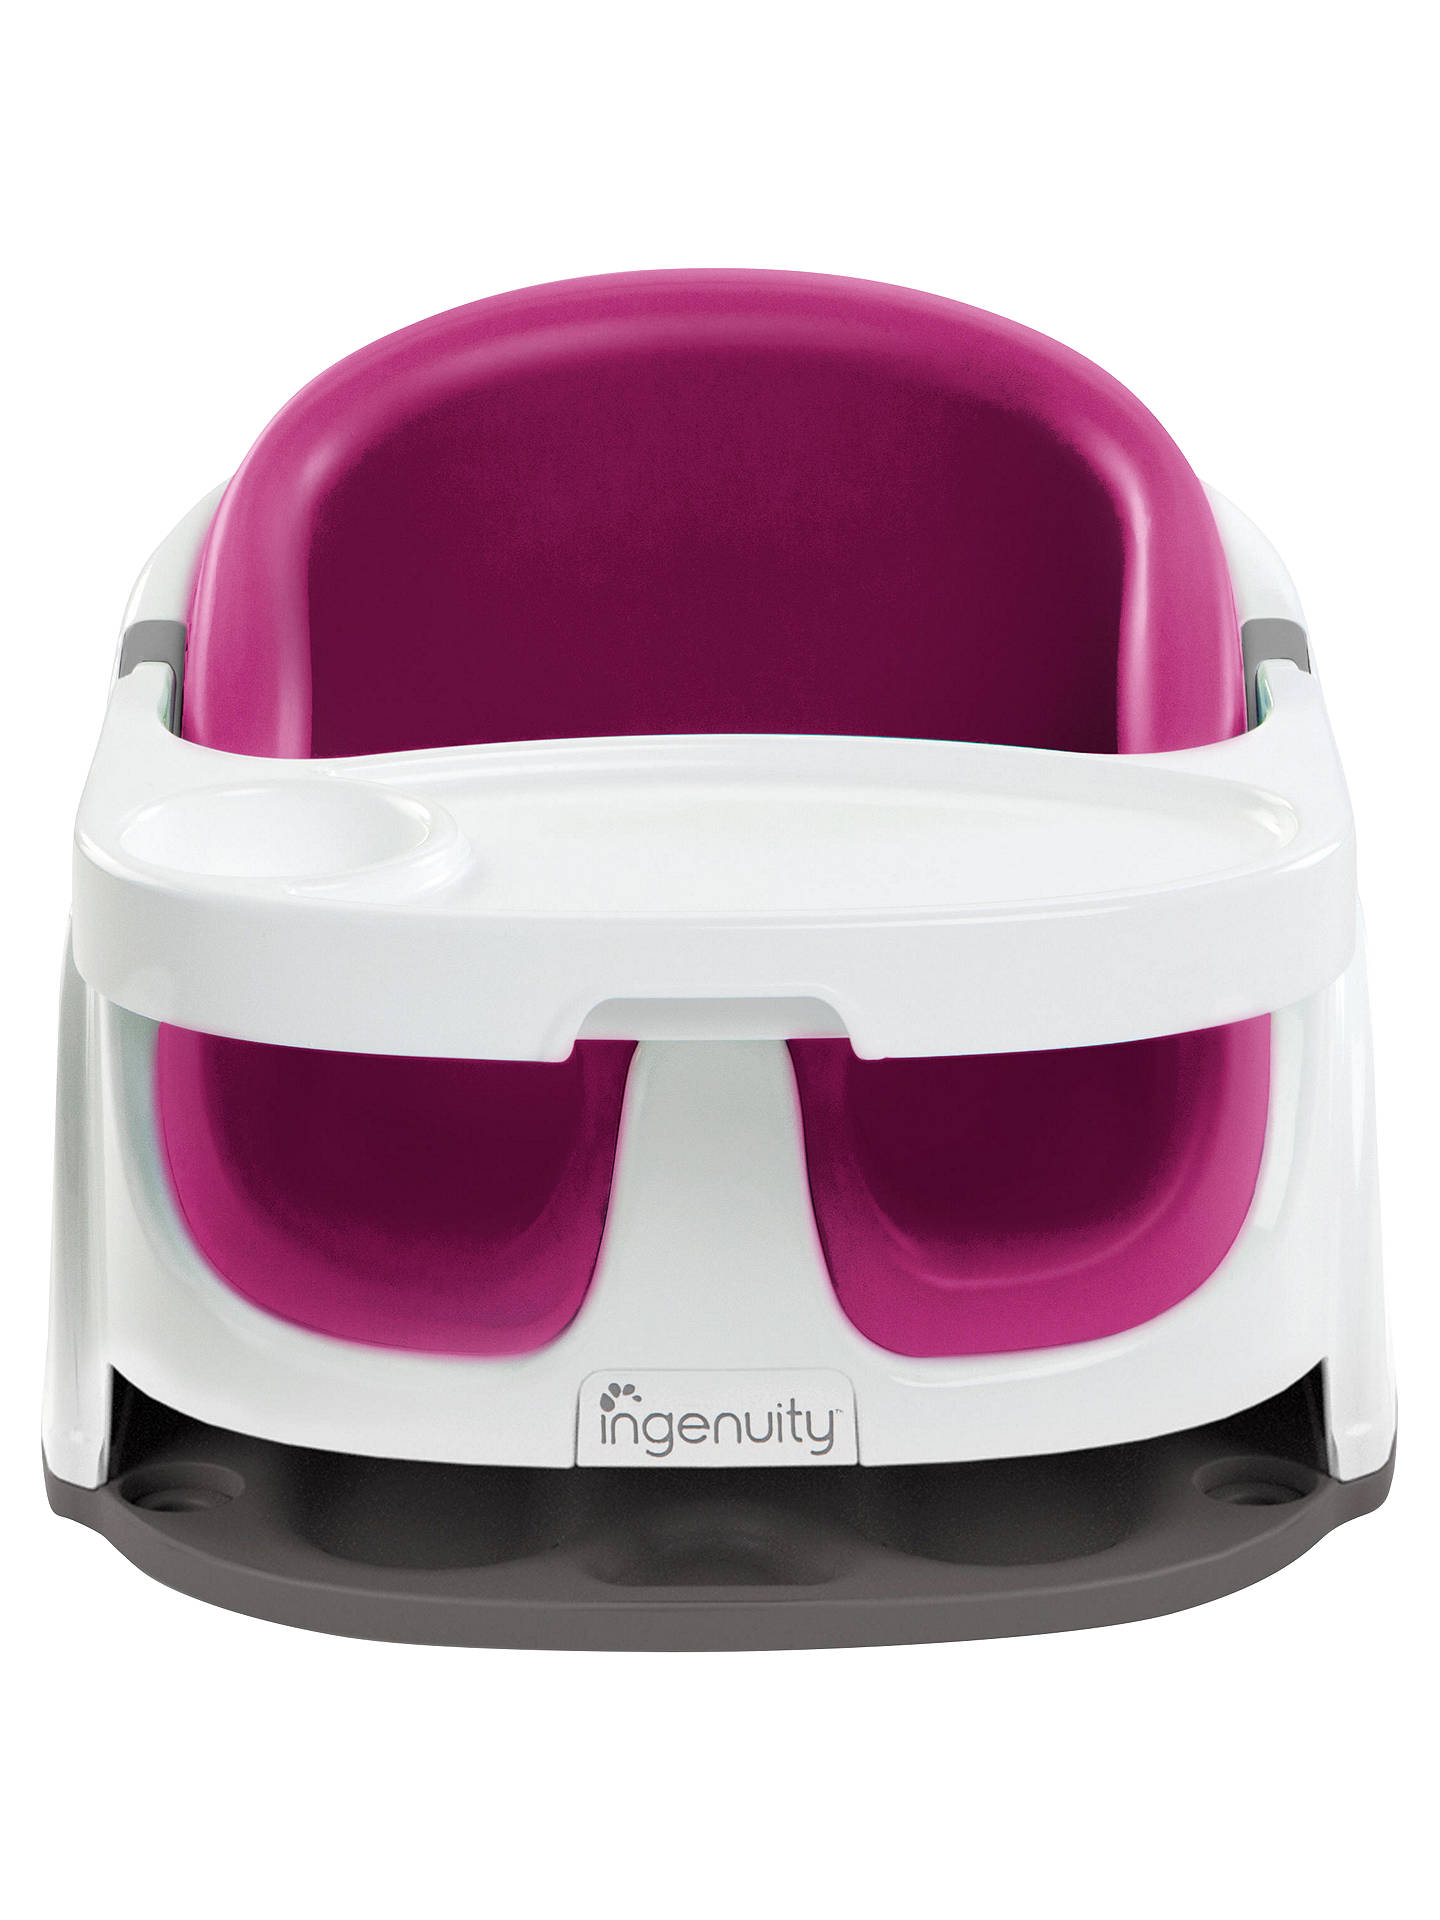 Buy Ingenuity Baby Base 2-in-1 Booster Seat, Pink Online at johnlewis.com